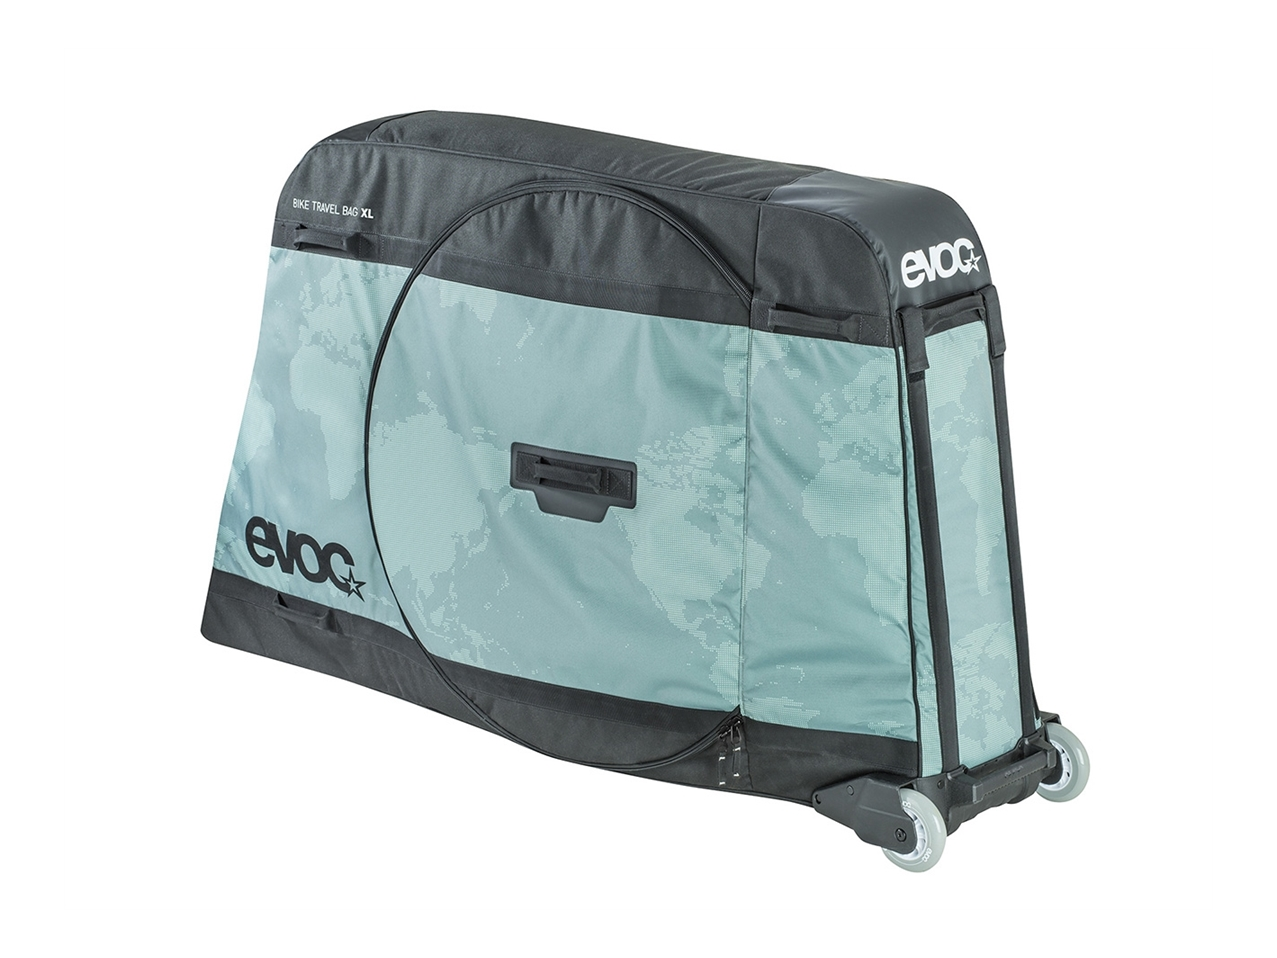 Evoc Bike Travel Bag Xl Transportväska